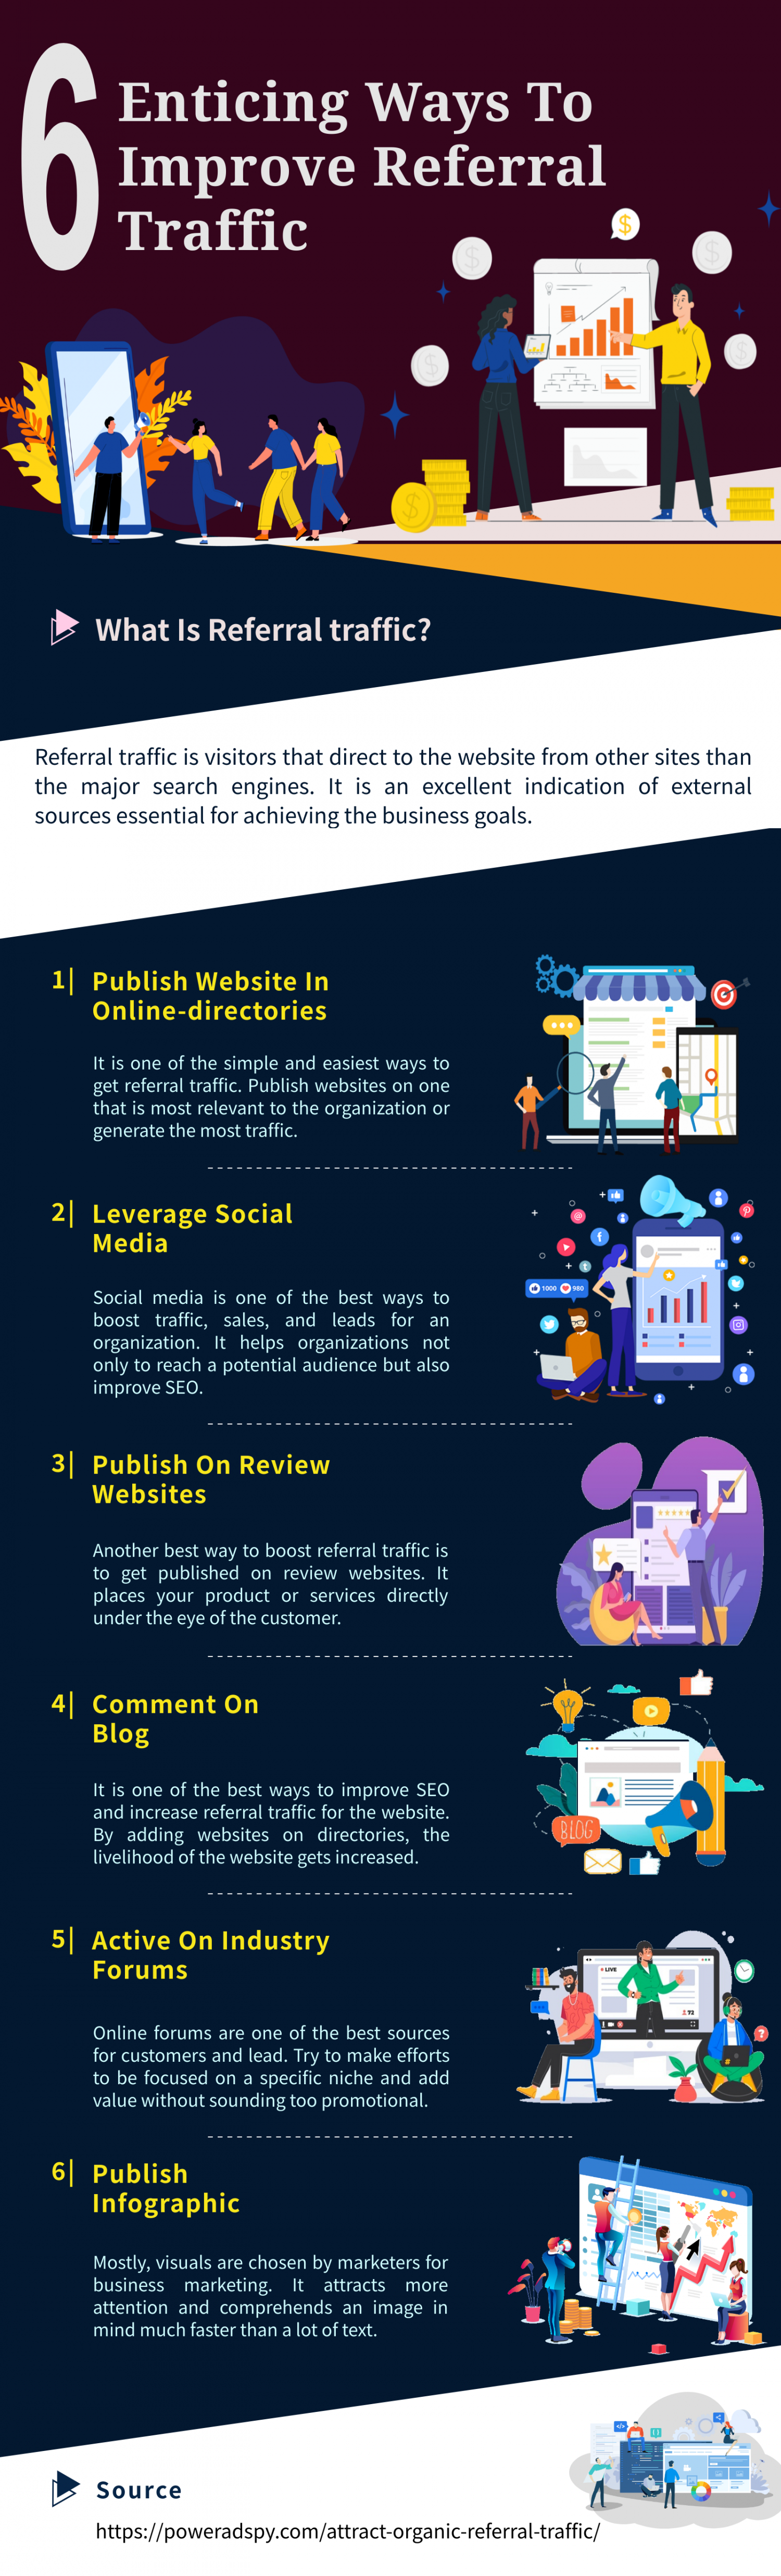 6 Enticing Ways To Improve Referral Traffic  Infographic